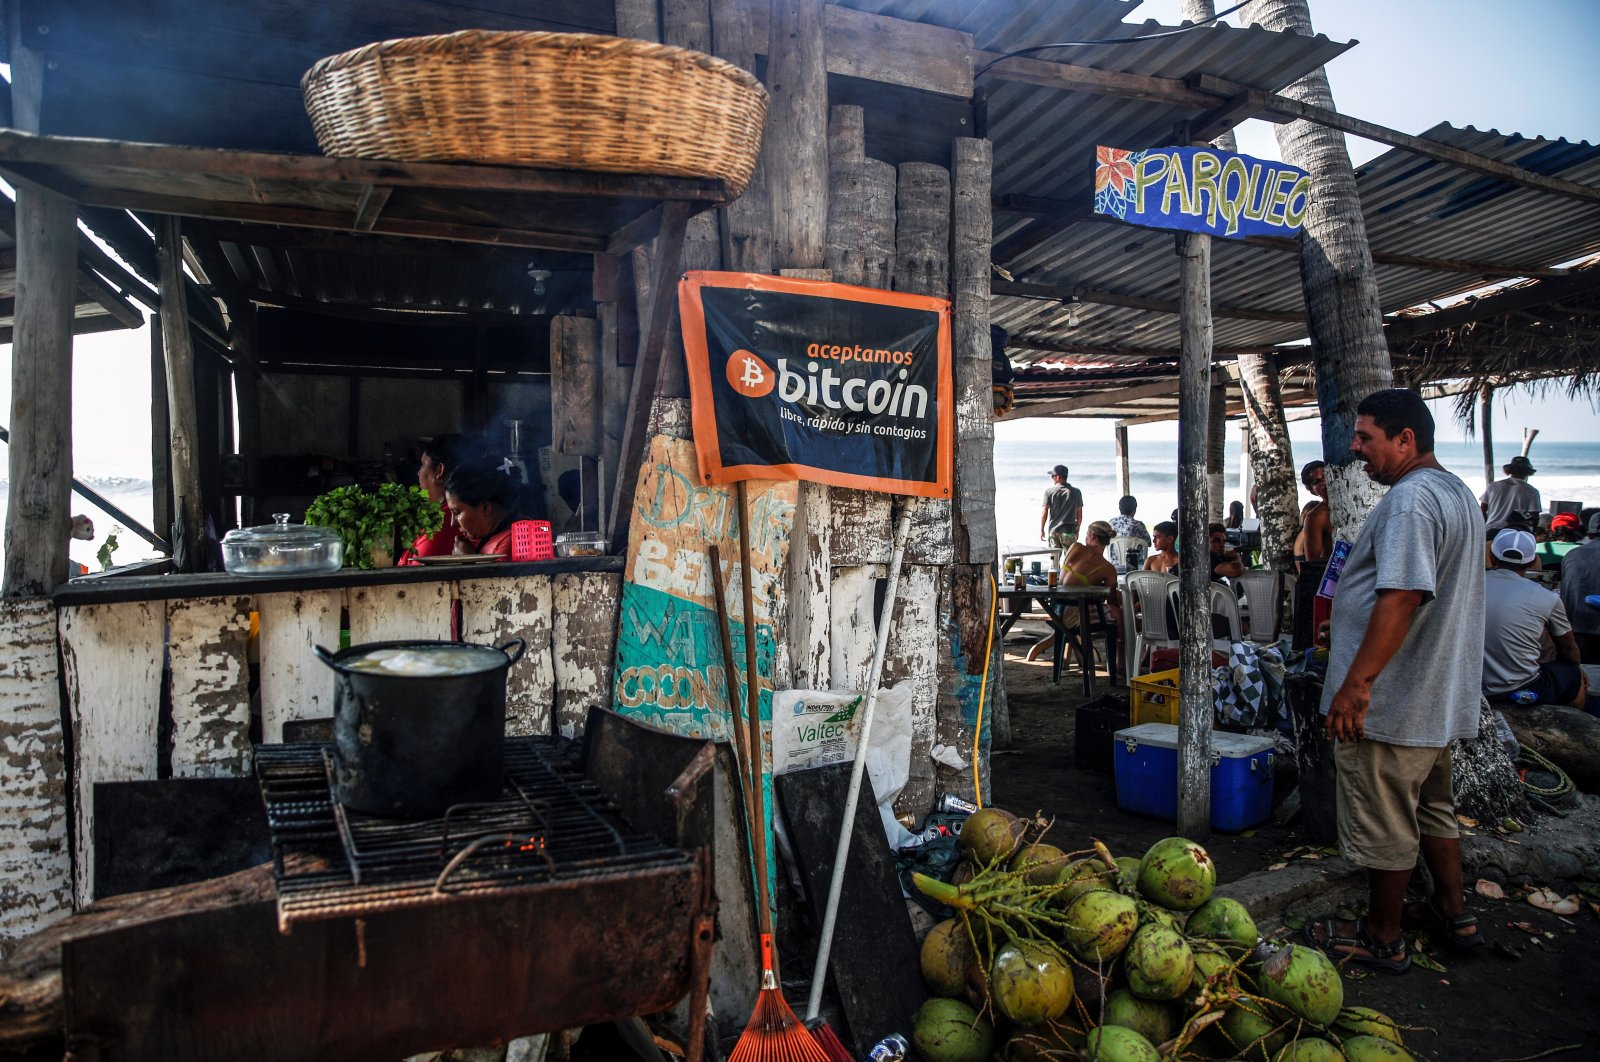 """A banner that reads """"We accept Bitcoin, free, fast and without contagion"""" is seen at a beach cafe on Punta Roca Beach in La Libertad, El Salvador, April 25, 2021. (Reuters Photo)"""